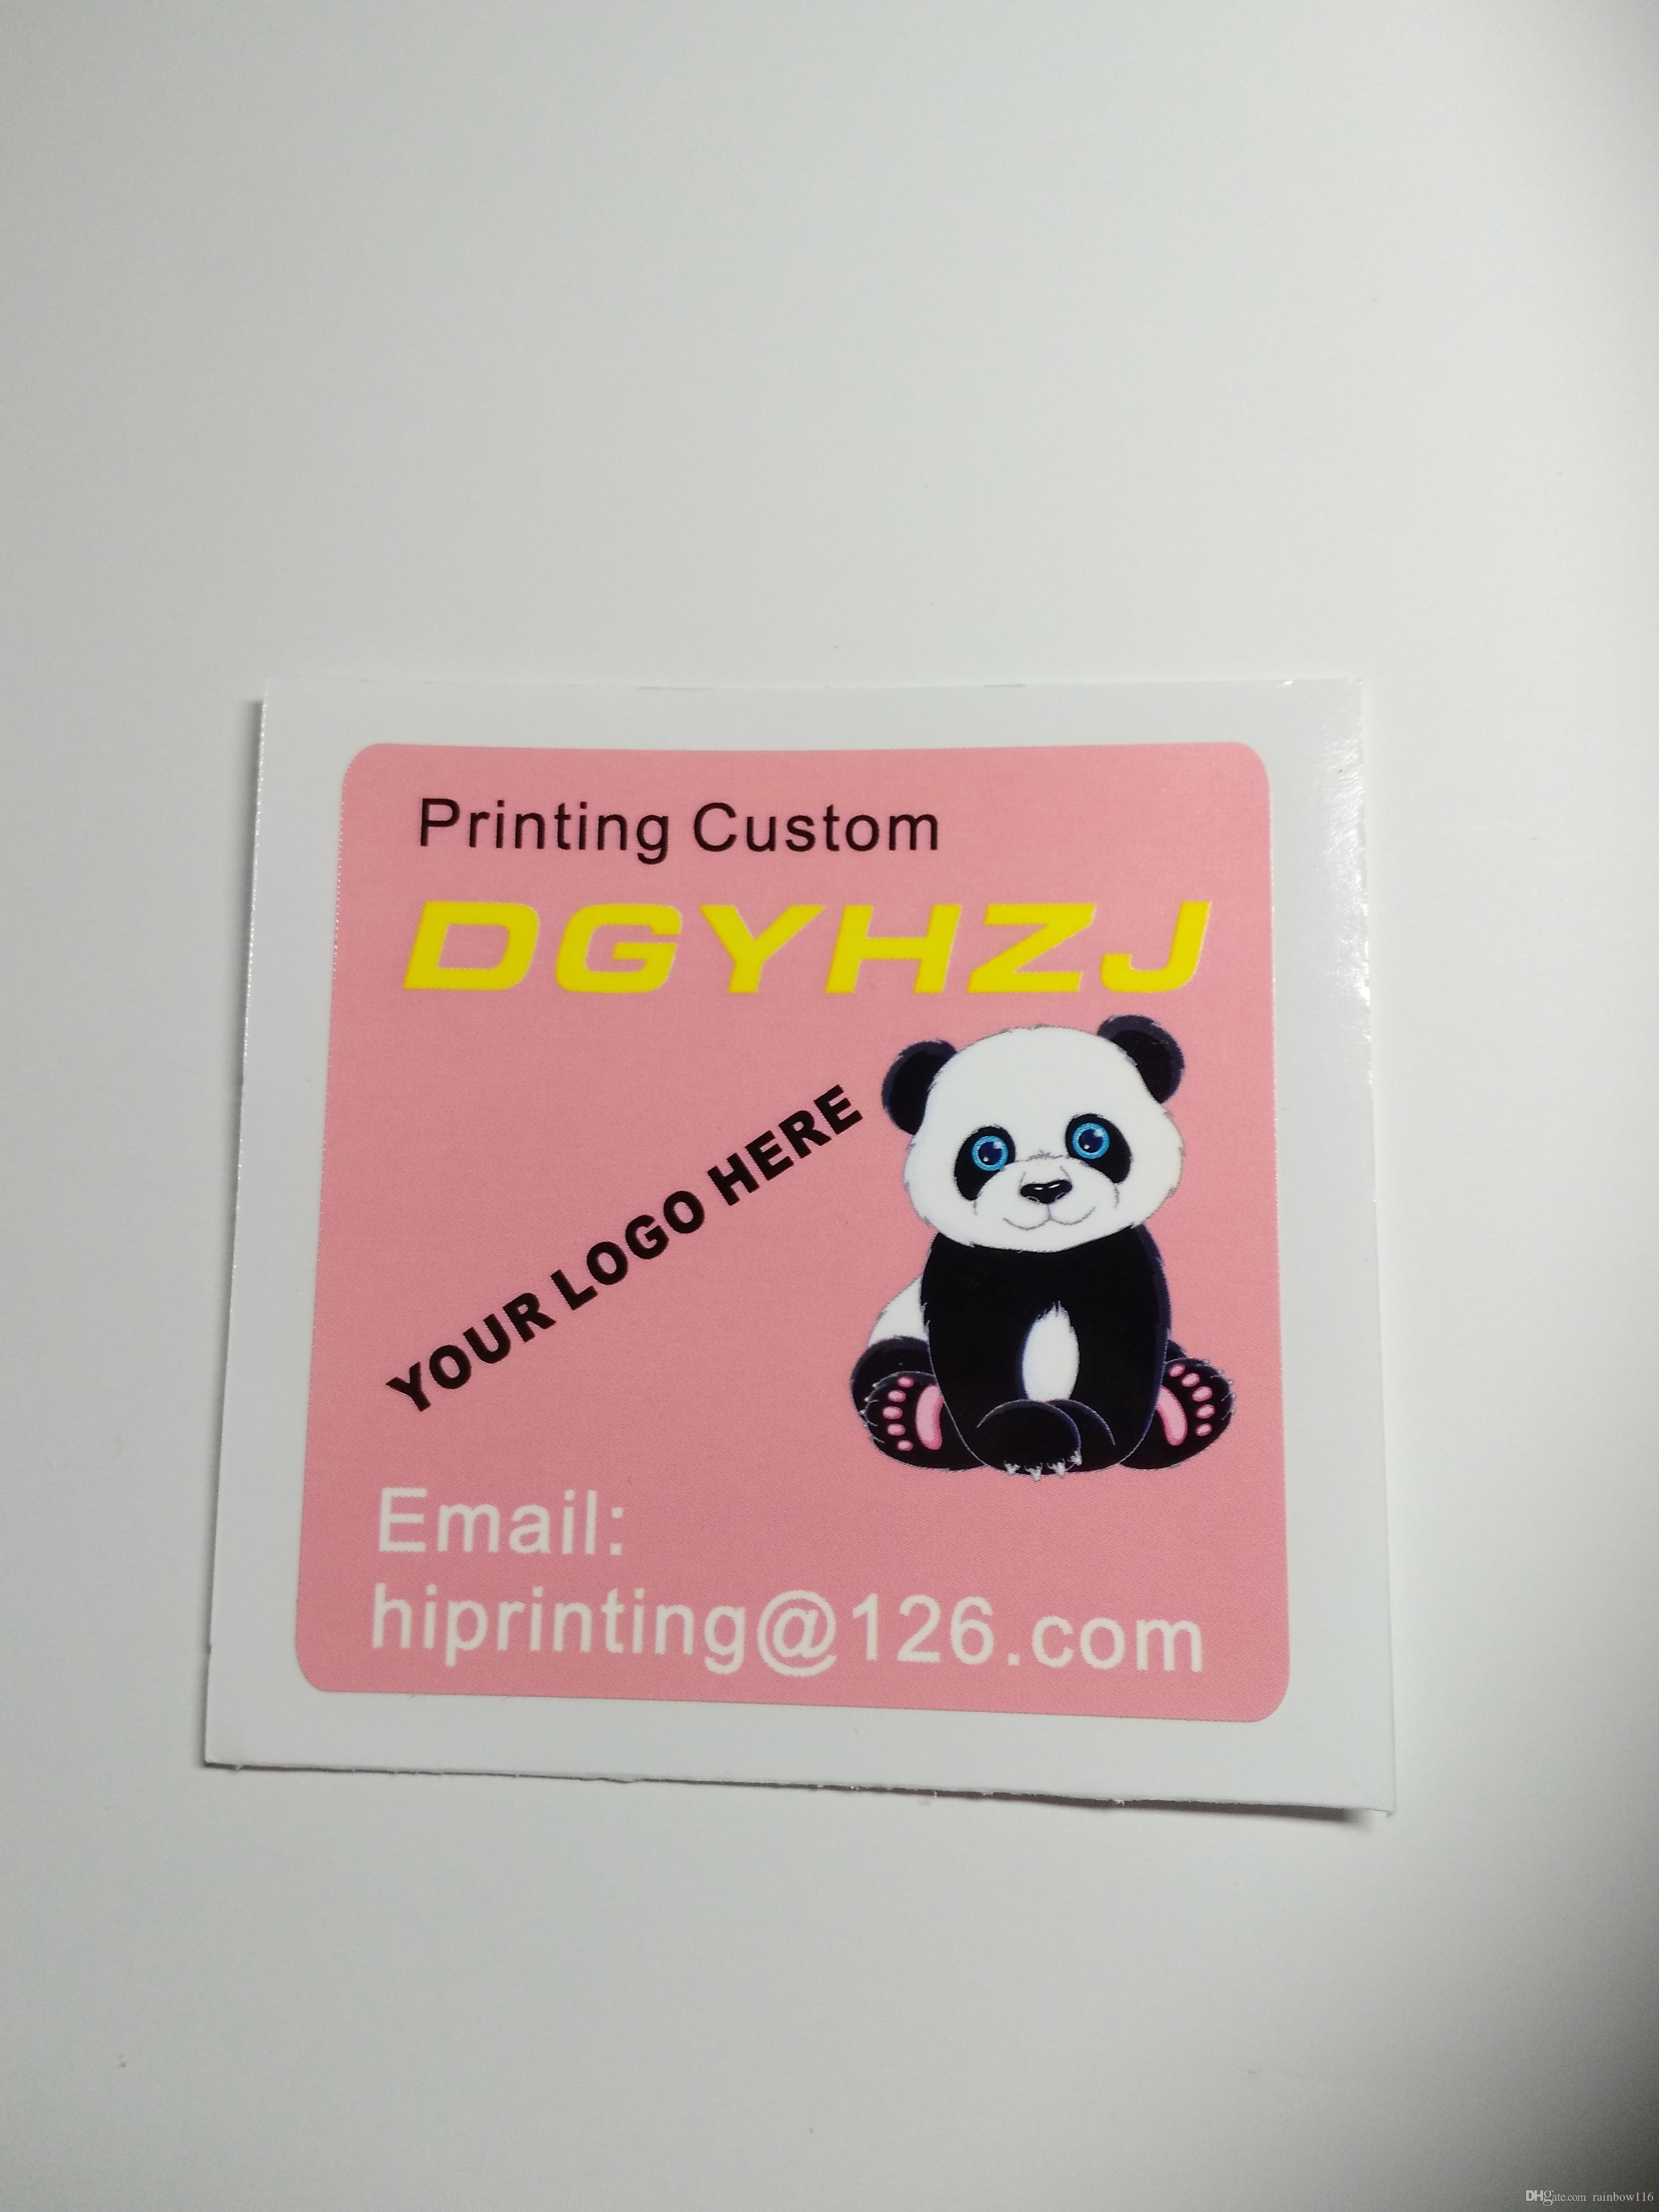 Glossy vinyl sticker printing custom vinyl stcker printing online with 143 72 piece on rainbow116s store dhgate com